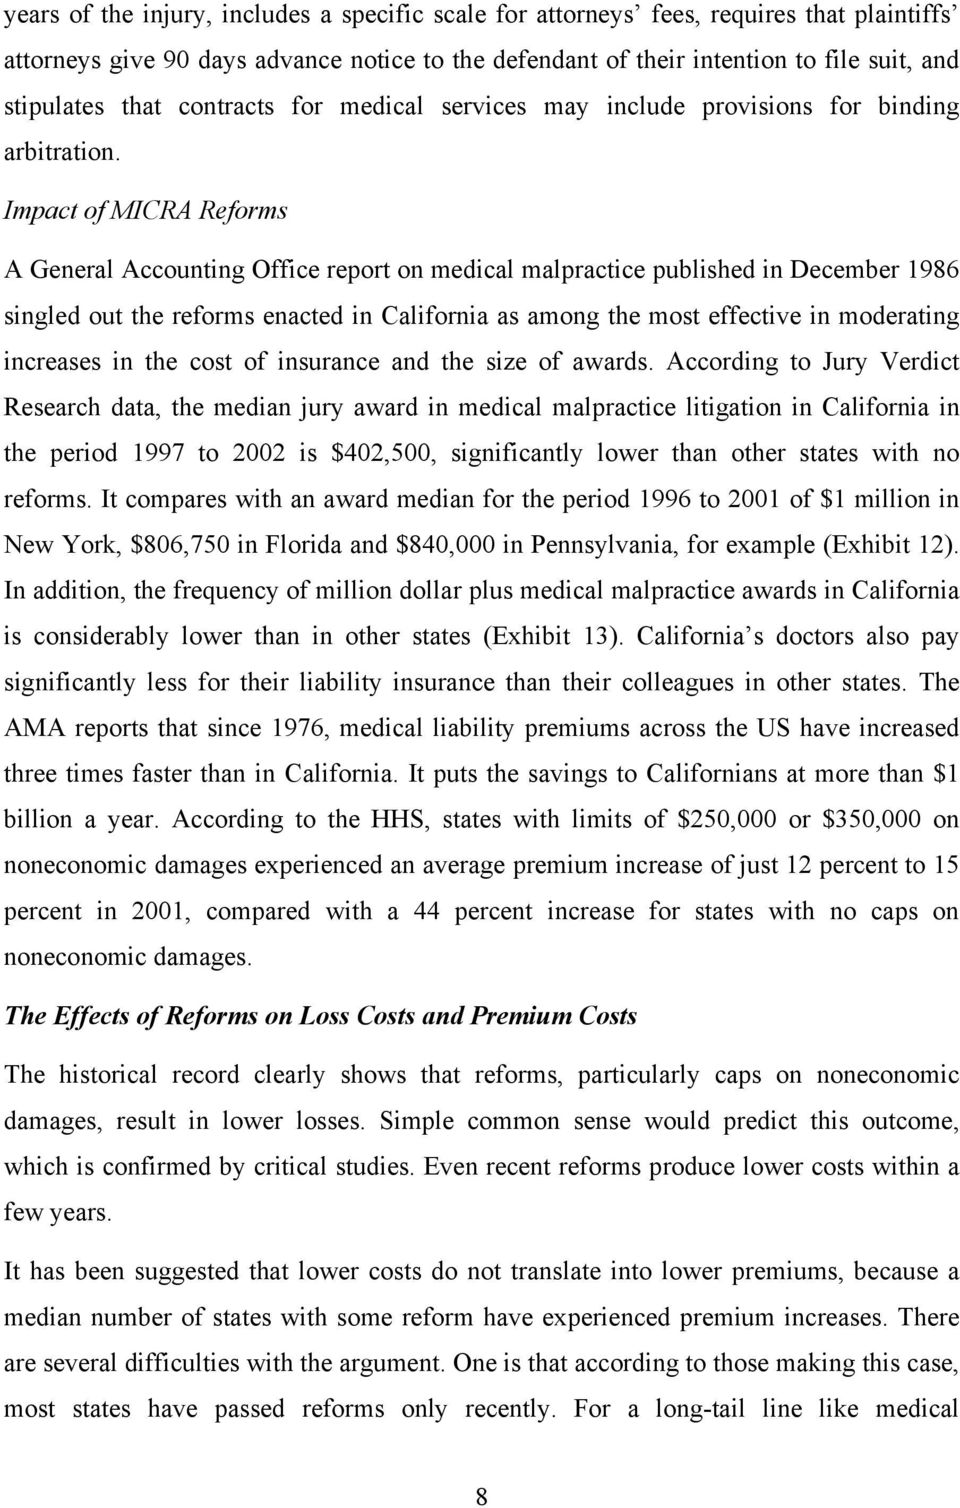 Impact of MICRA Reforms A General Accounting Office report on medical malpractice published in December 1986 singled out the reforms enacted in California as among the most effective in moderating